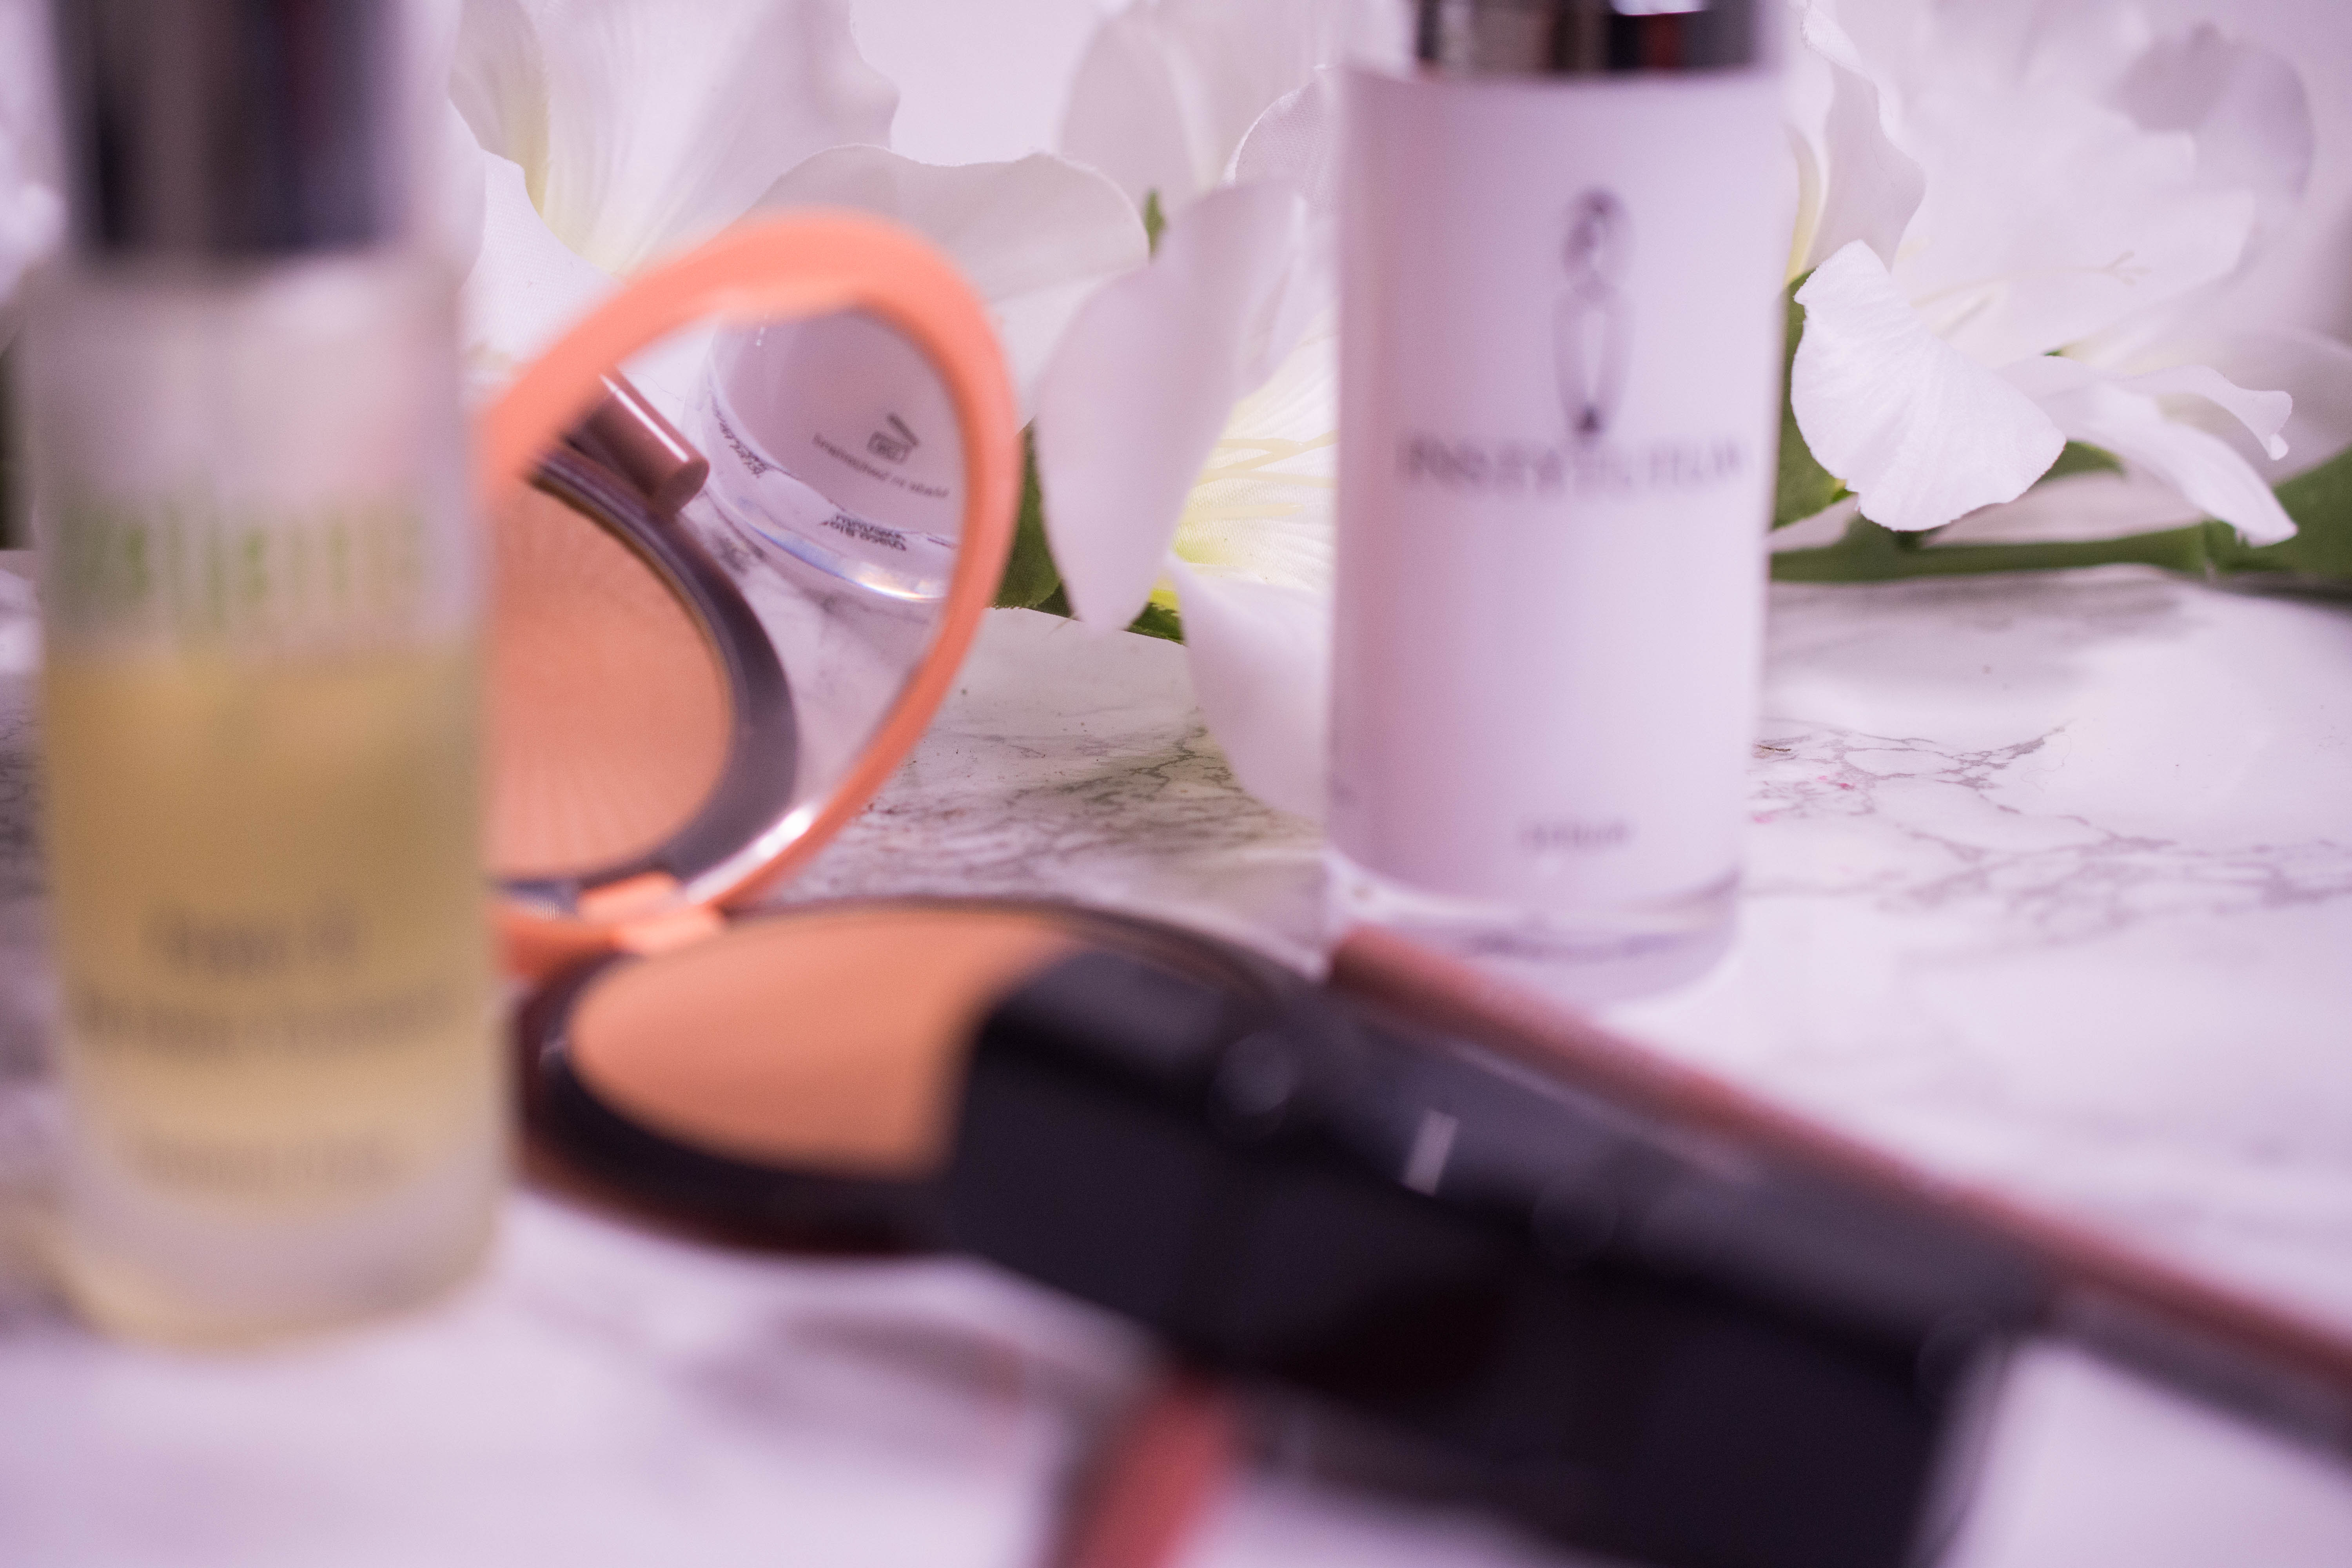 Best of beauty 2017 - makeup and skincare